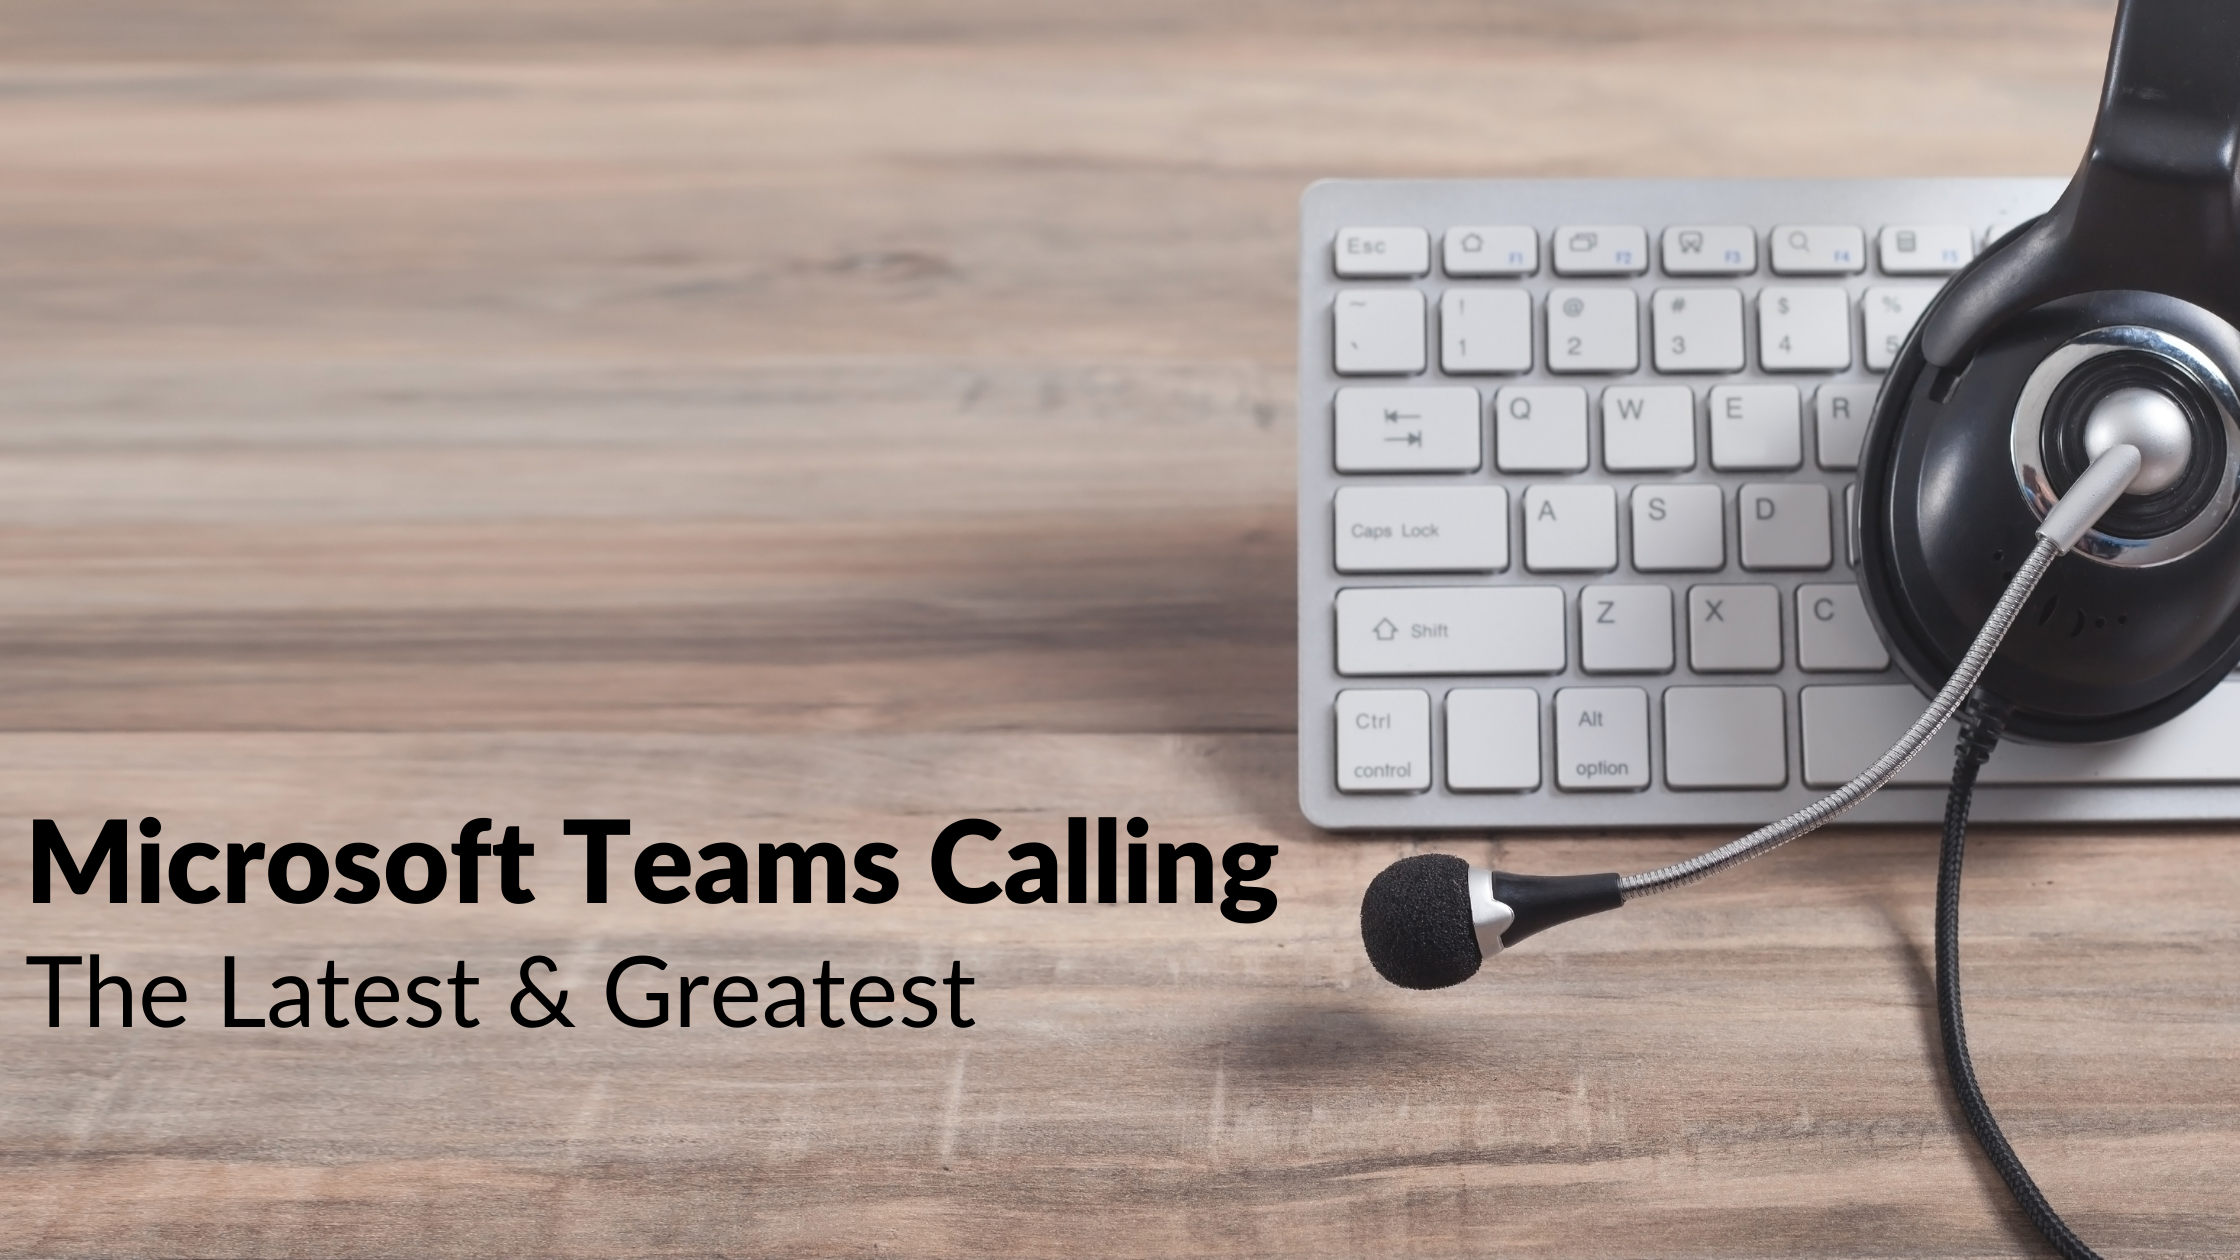 Microsoft Teams Calling | The latest and greatest